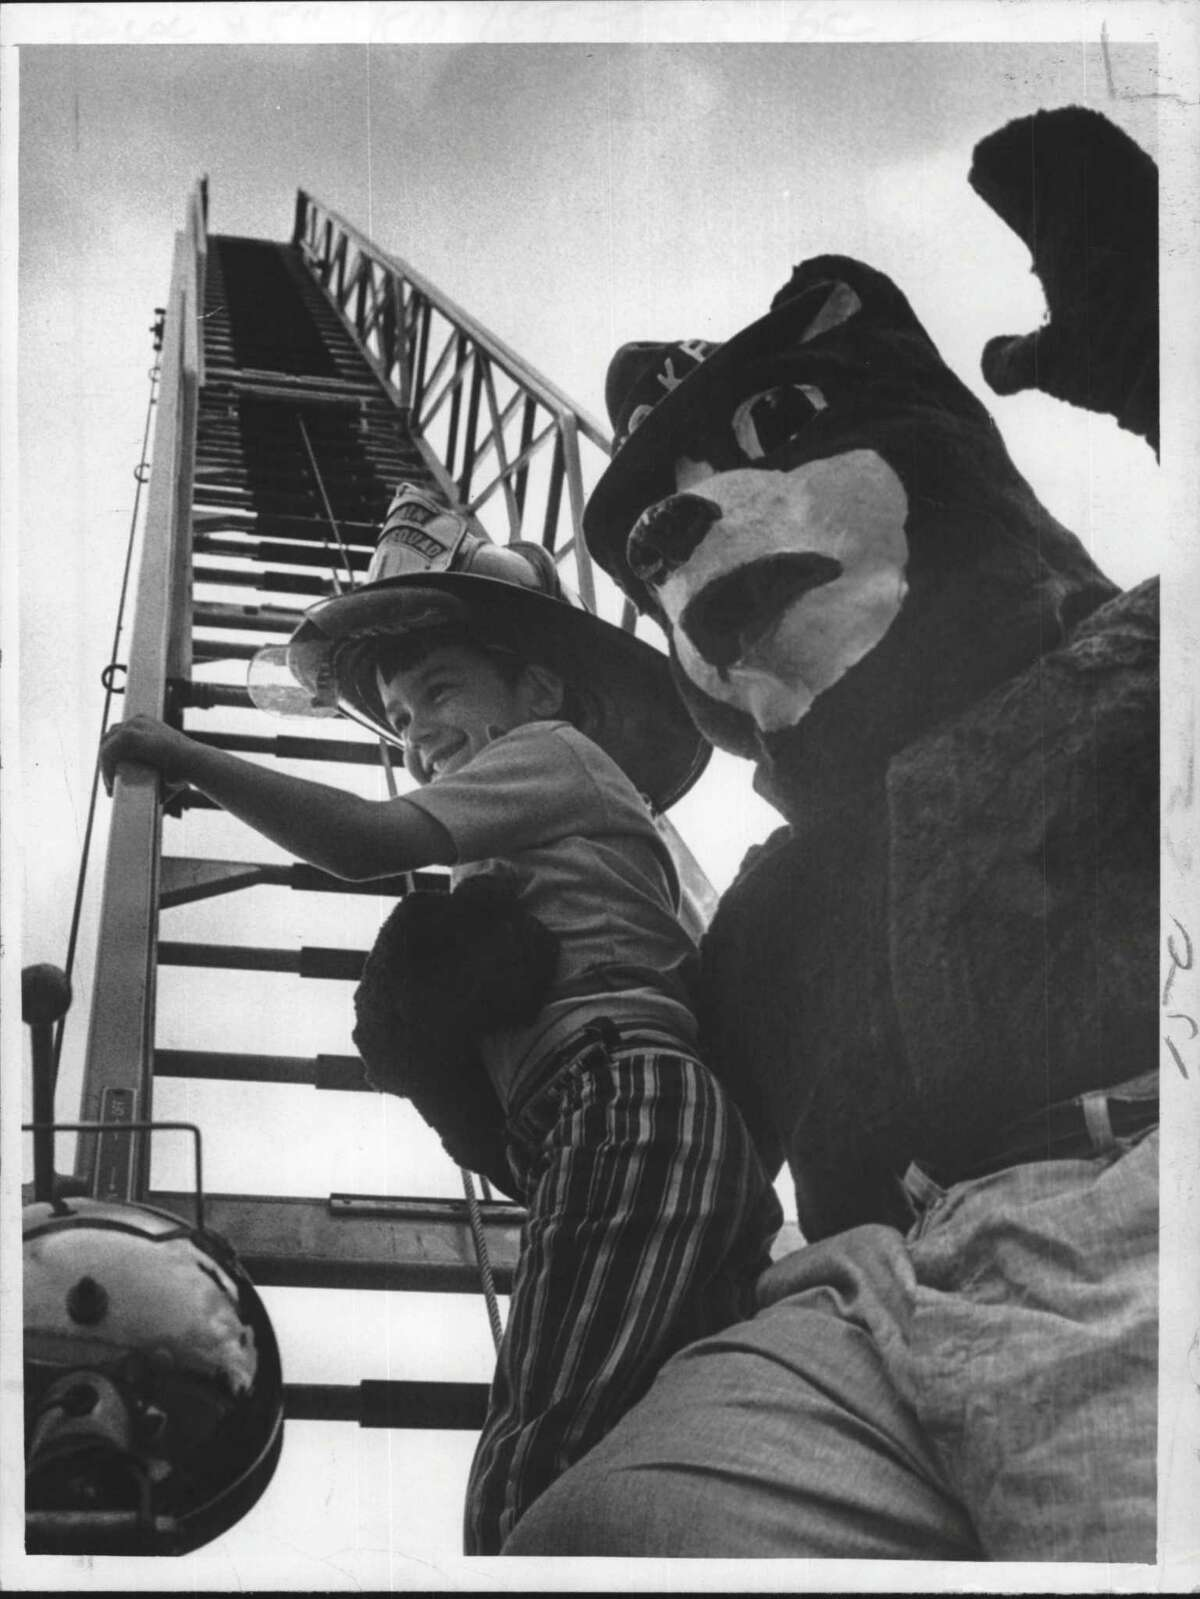 New York - fire prevention - Mike McClain of the Blue Creek Elementary School kindergarten class gets a look up the Latham Fire Department aerial with the help of Smokey Undated (otherwise Lieutenant Warren Carr). The Latham Fire Department is presenting fire prevention programs to all schools in their fire district. October 07, 1971 (Fred McKinney/Times Union Archive)